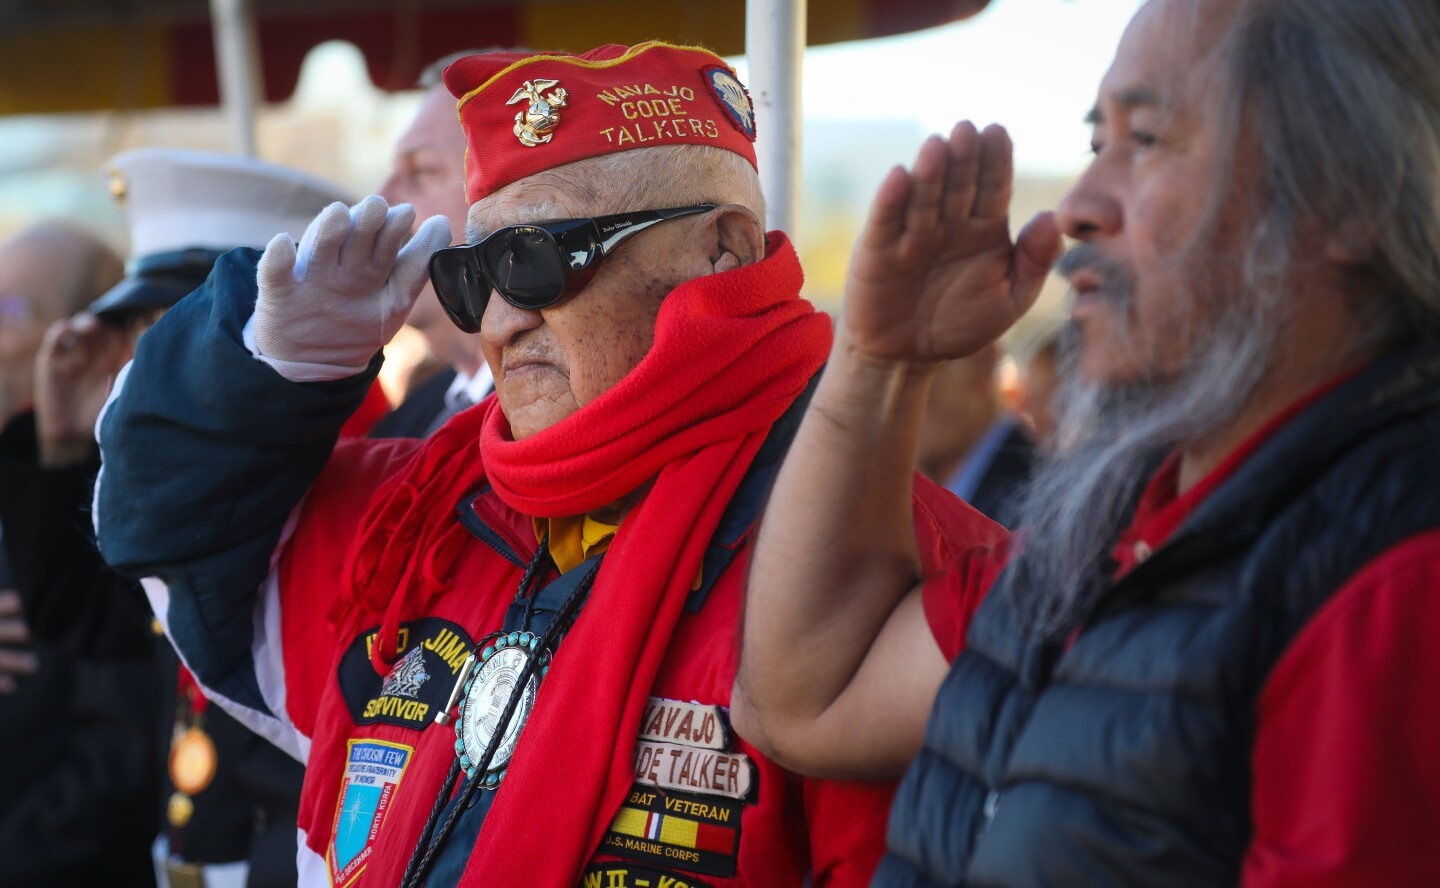 World War II Marine Corps veteran of the Battle of Iwo Jima, and one of the last Navajo code talkers, Thomas H. Begay, of Window Rock, Arizona, salutes during the national anthem, during commemoration ceremony for the 75th anniversary of the famous battle, held at Camp Pendleton, February 15, 2020. This is the last time the Iwo Jima Commemorative Committee is planning to hold a formal West Coast gathering of veterans of the battle.